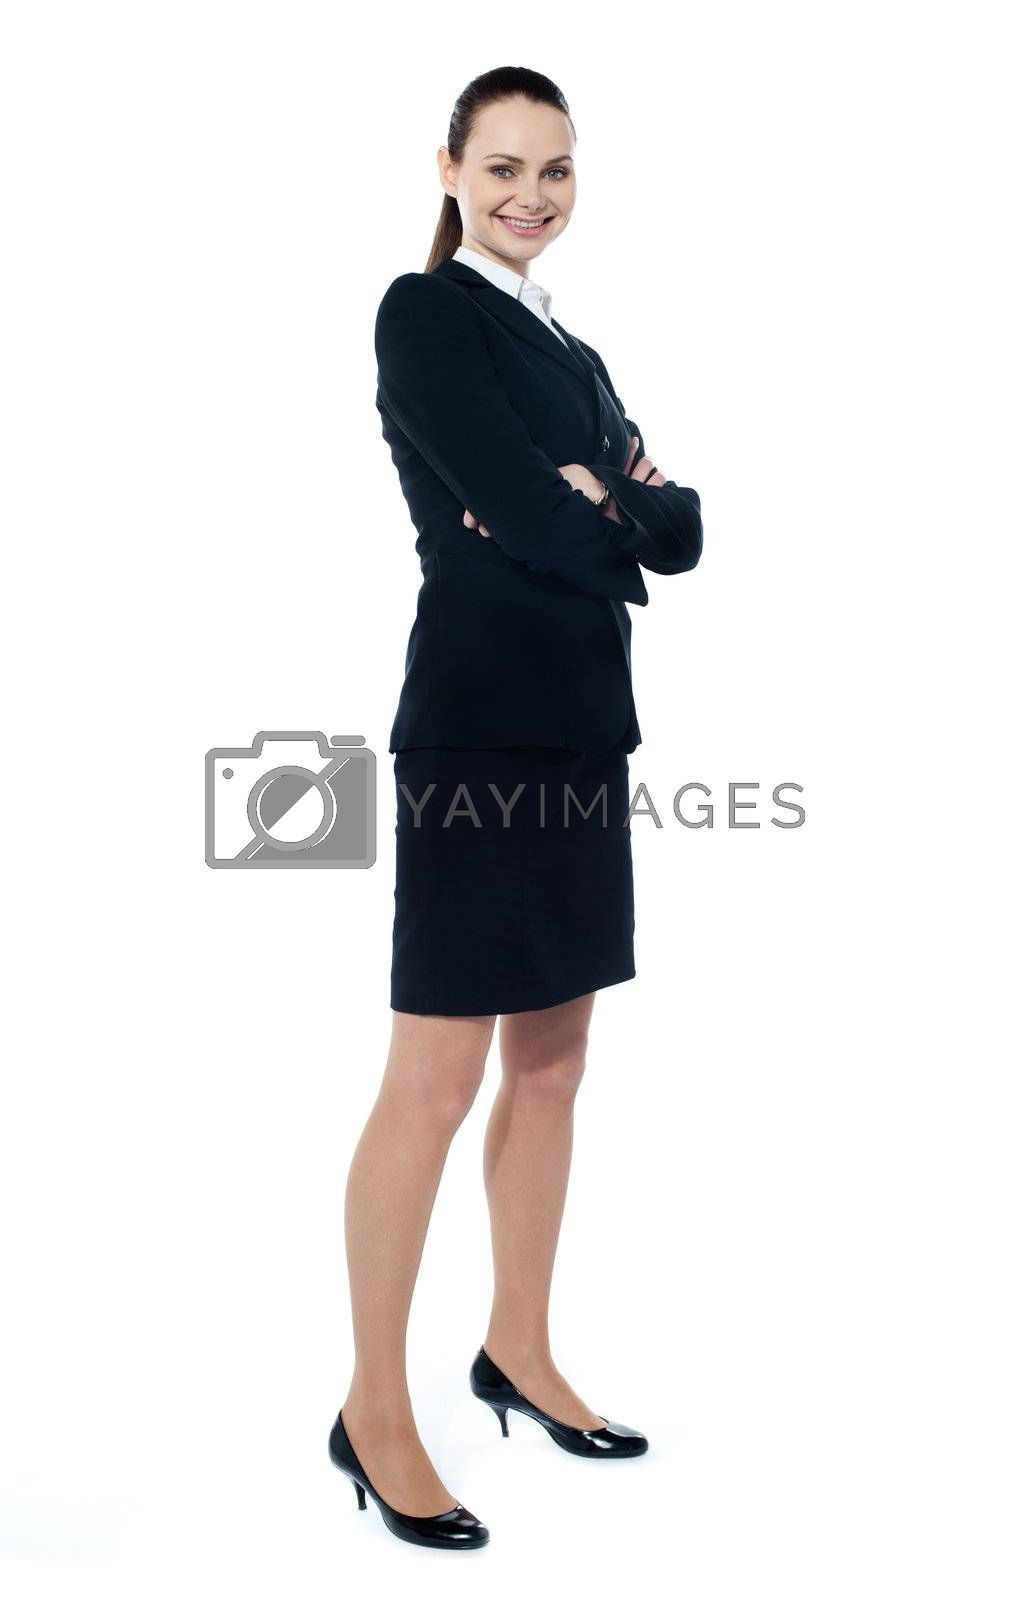 Confident ceo posing in style isolated over white